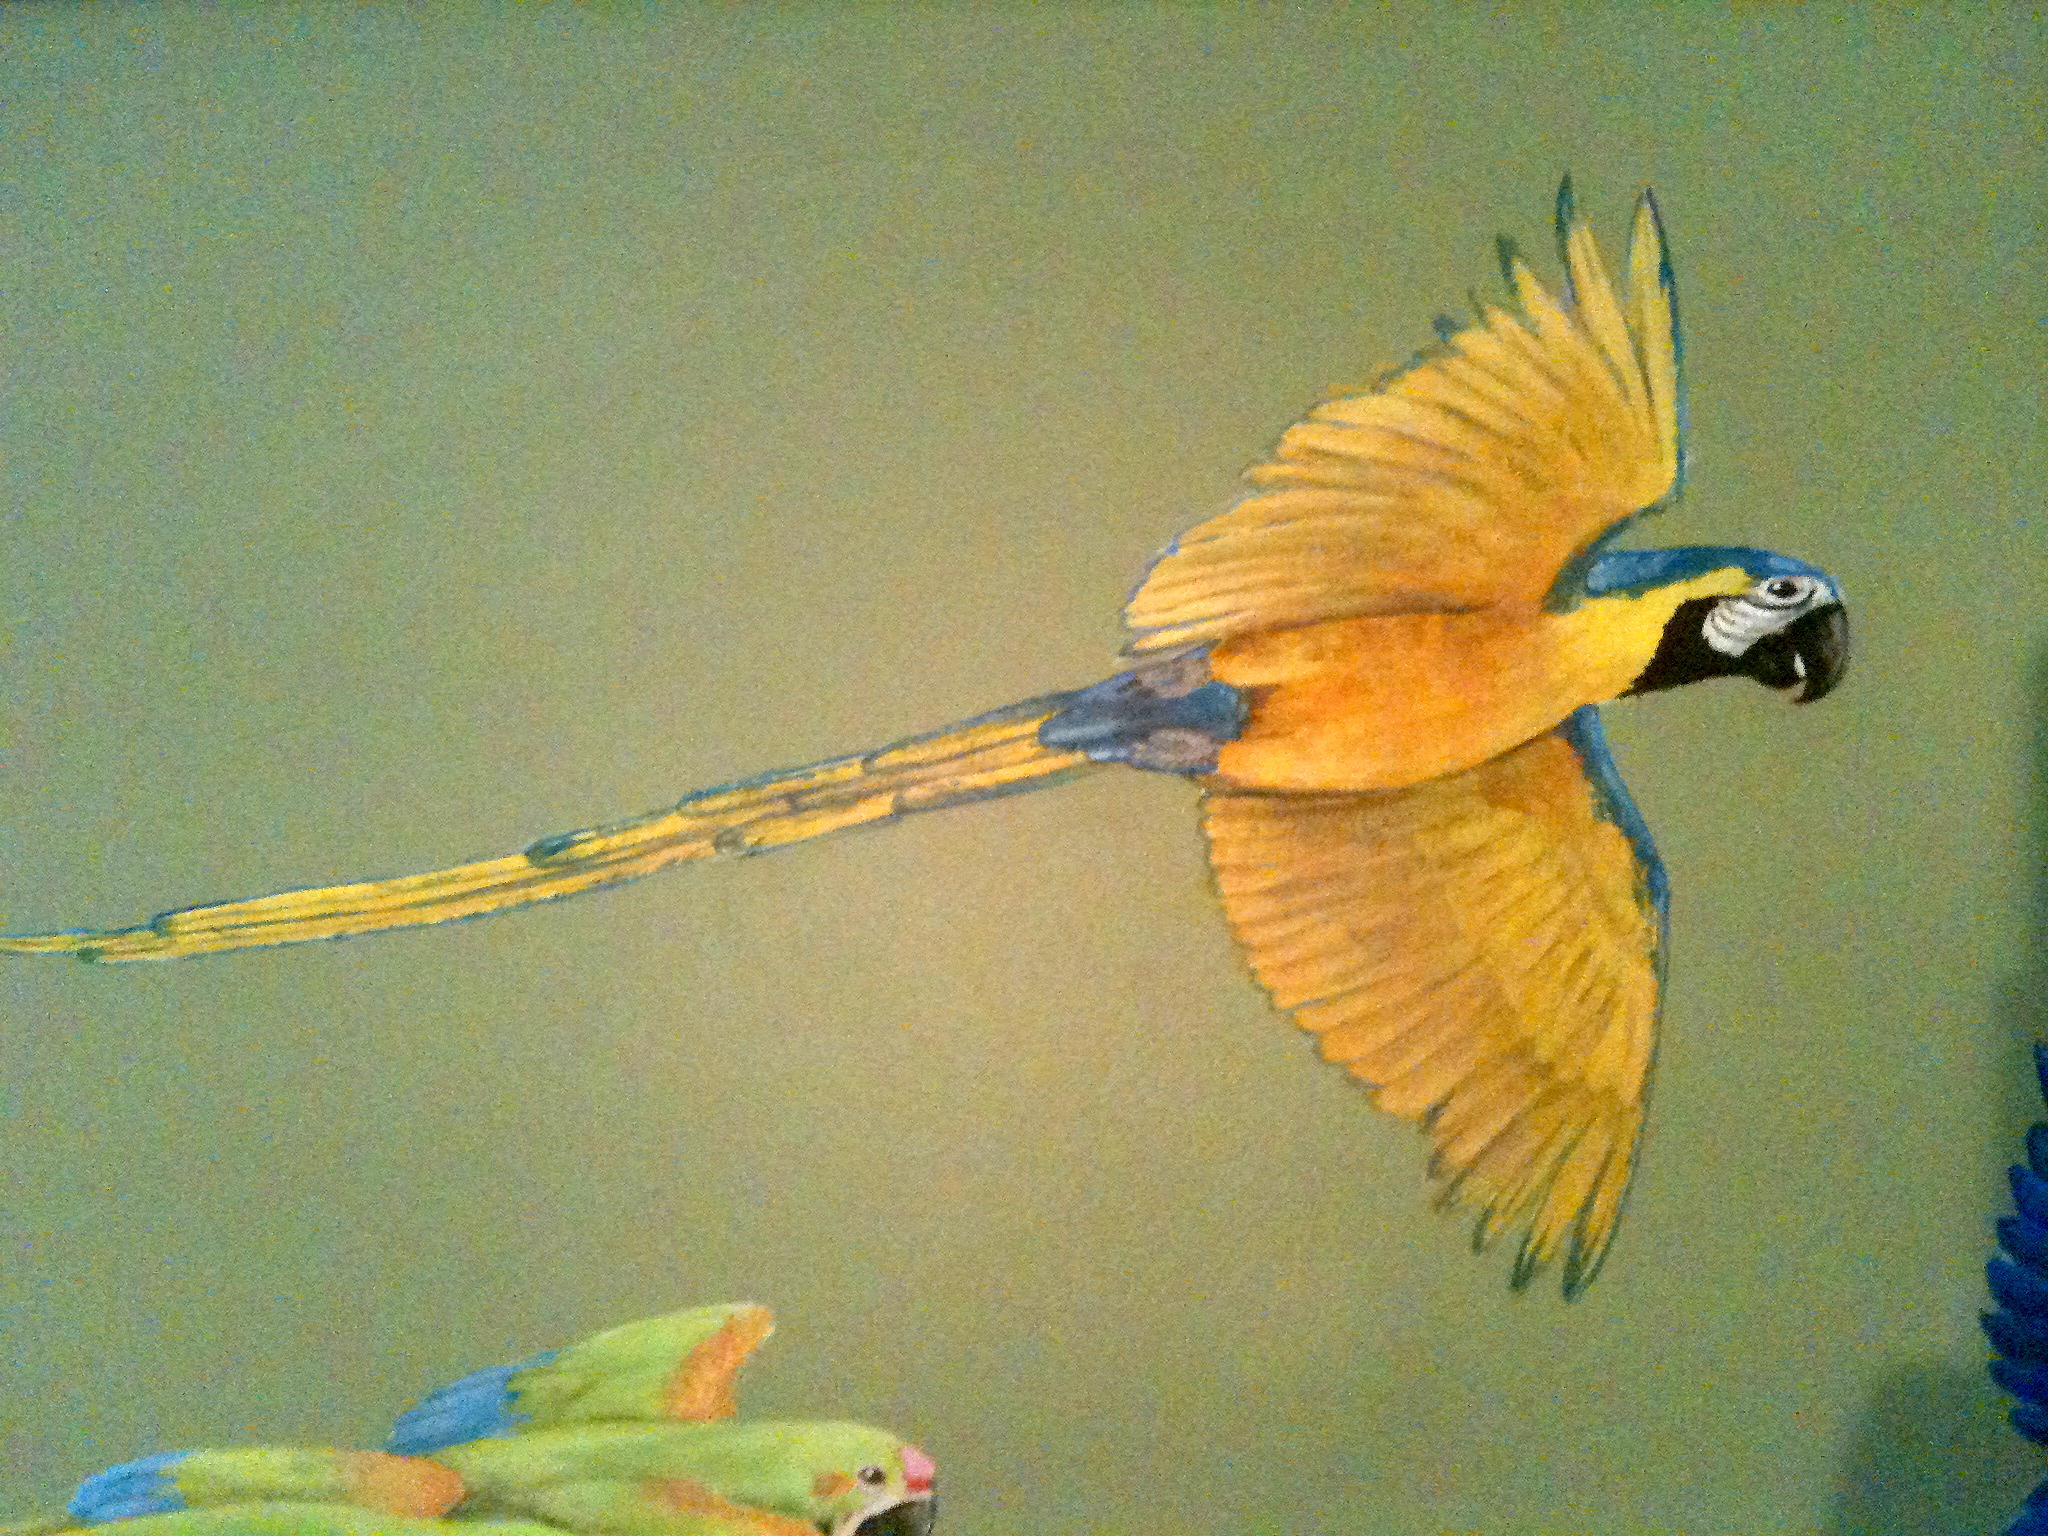 Rainforest Macaw Detail Frederick Wimsett - murals and artistic design - other projects.jpg